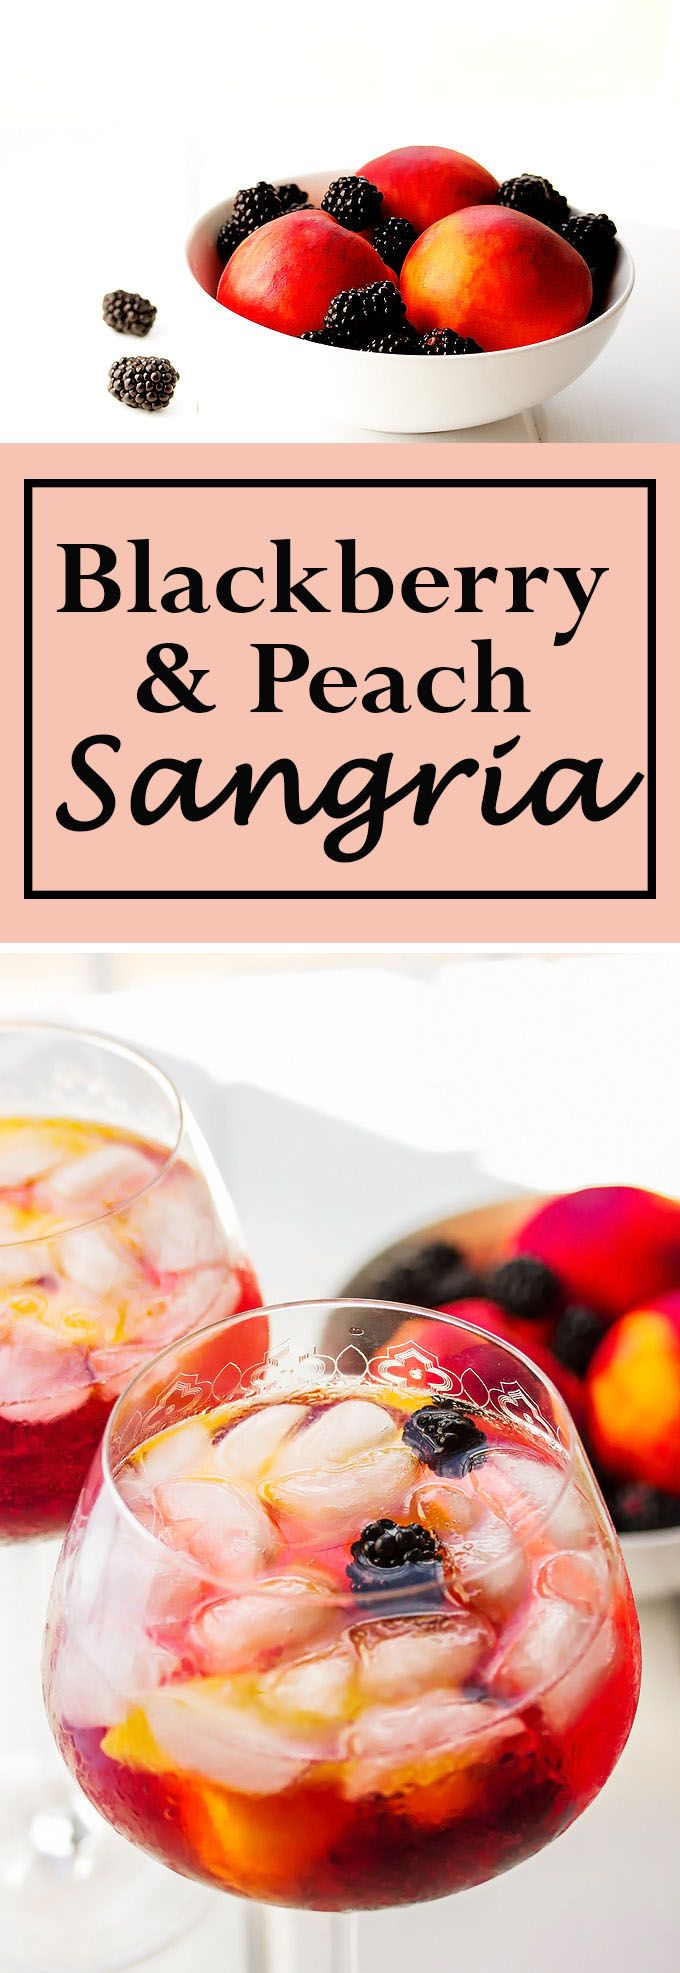 Blackberry and Peach Sangria